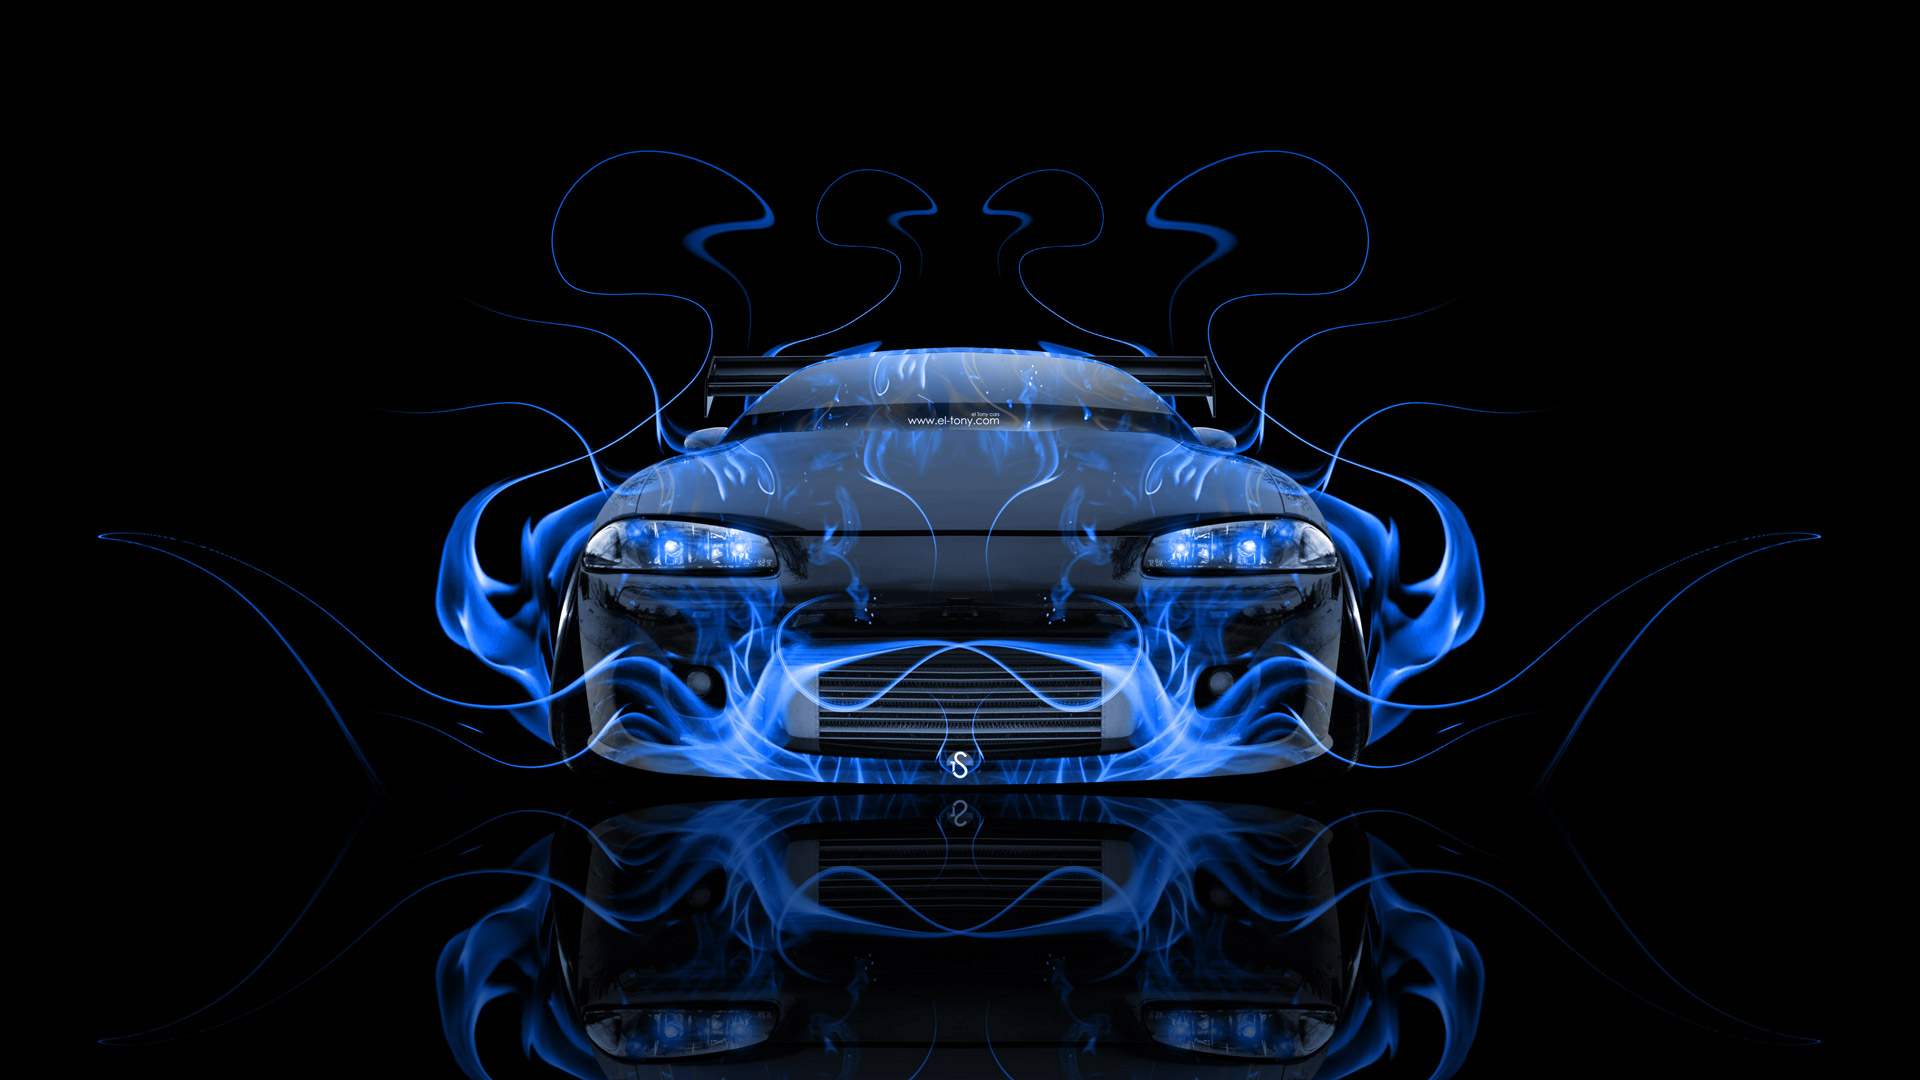 Supra Iphone Wallpaper Mitsubishi Eclipse Jdm Tuning Front Fire Car 2014 El Tony